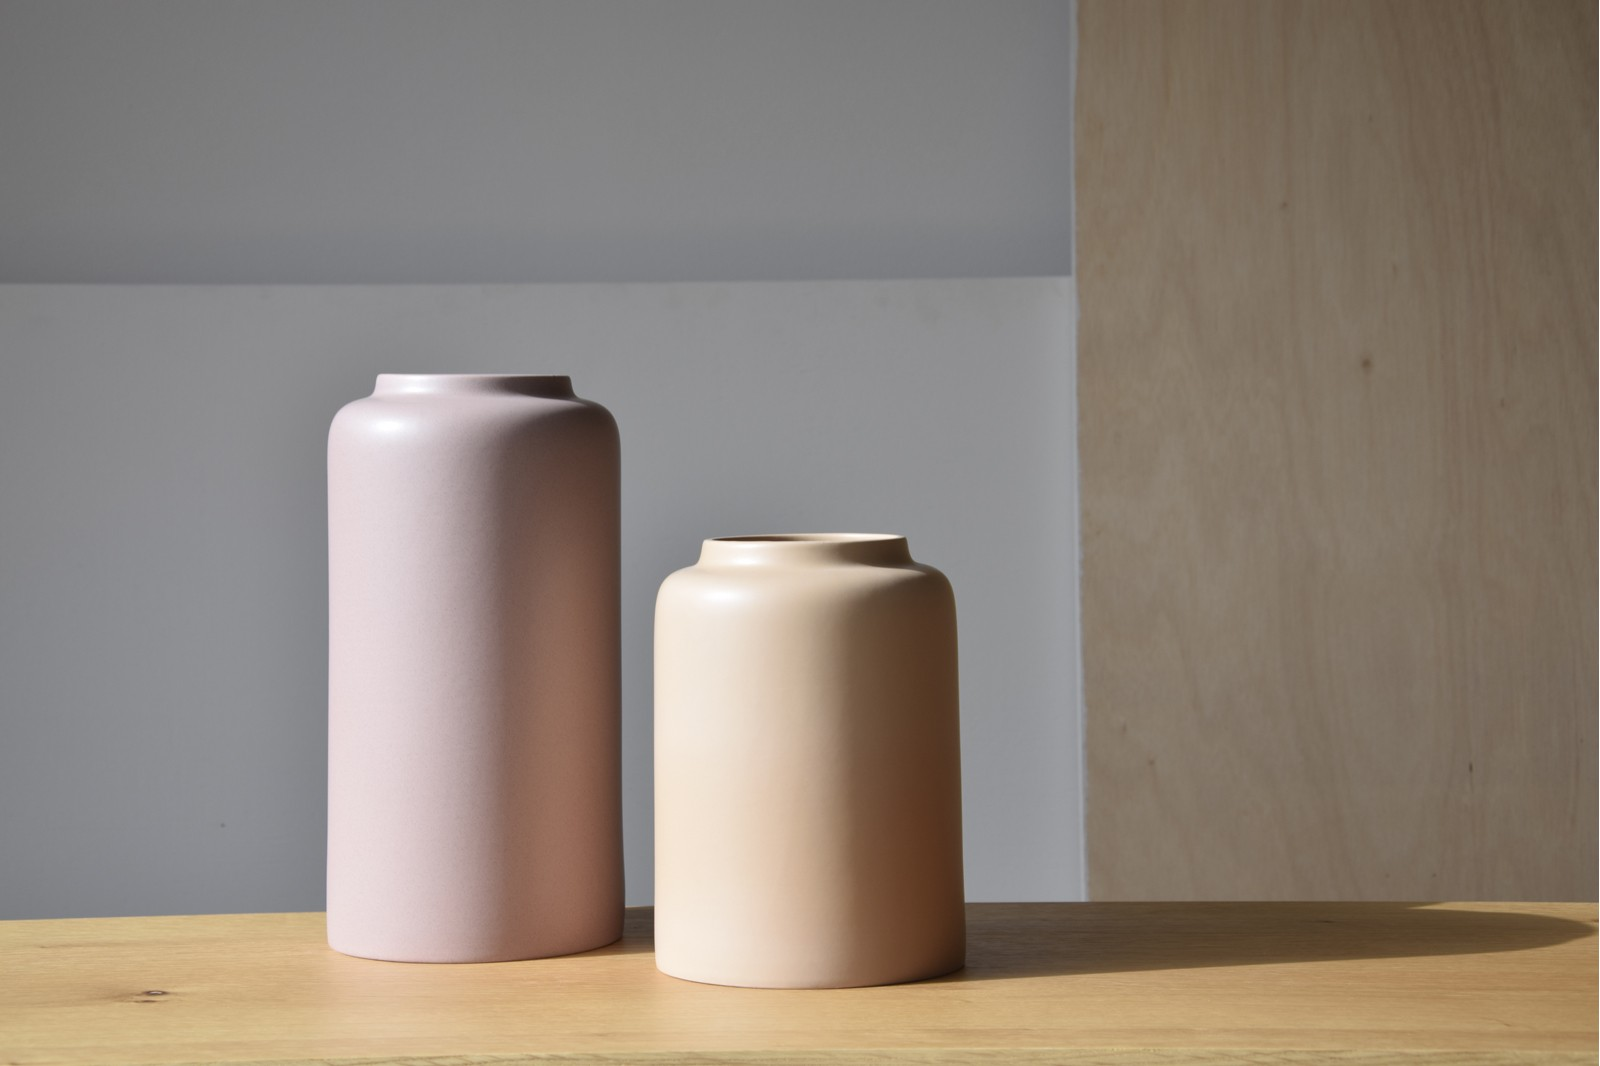 NATURAL COLLECTION: CERAMIC VASES